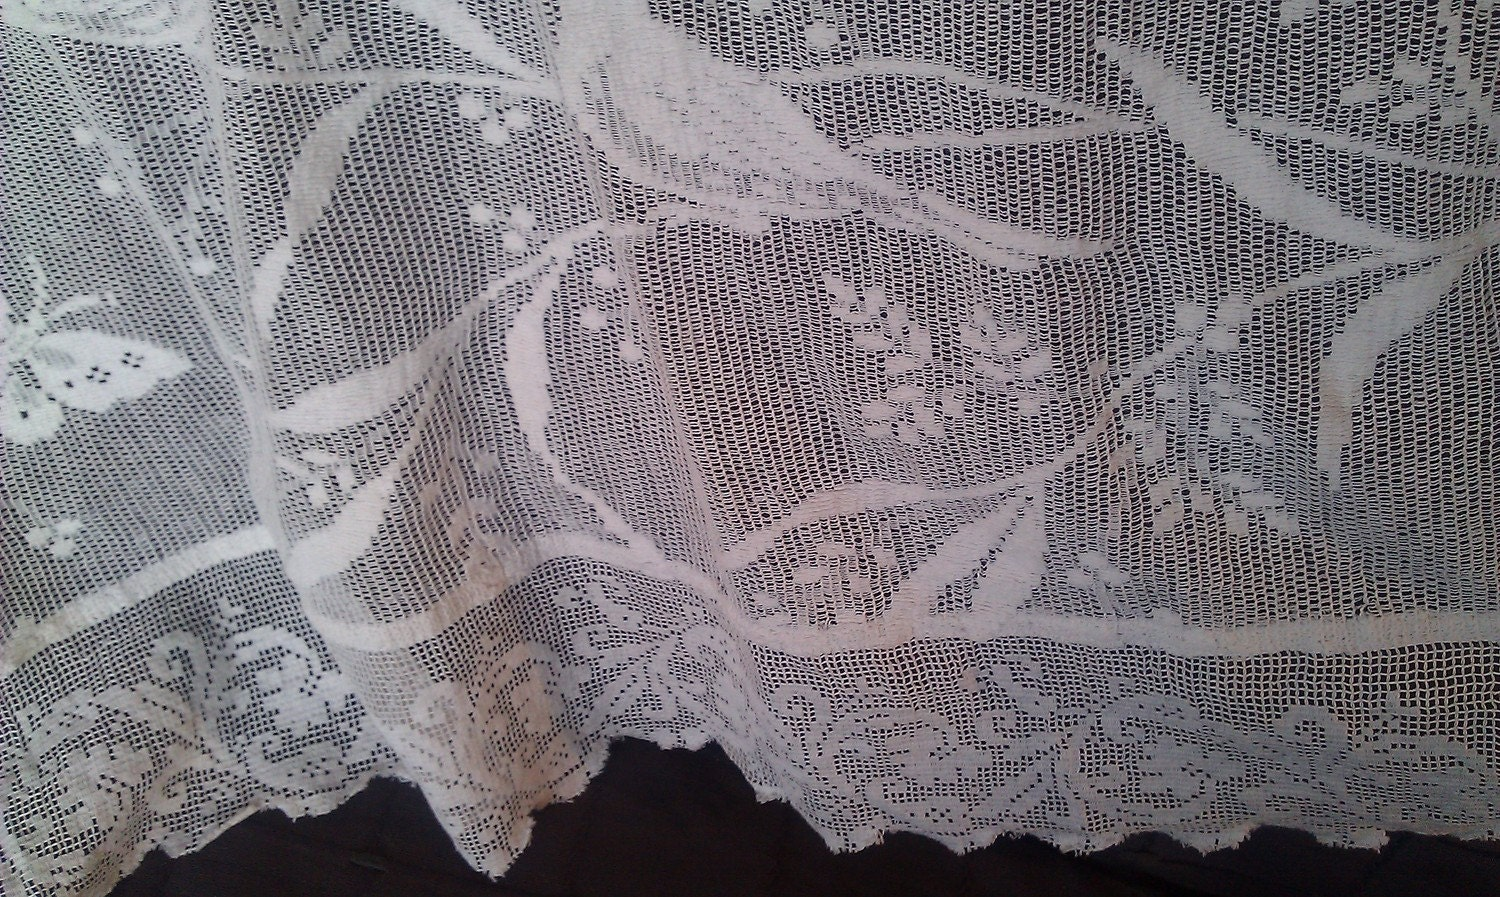 Rue De France Lace Curtains: Latest News, Photos and Videos